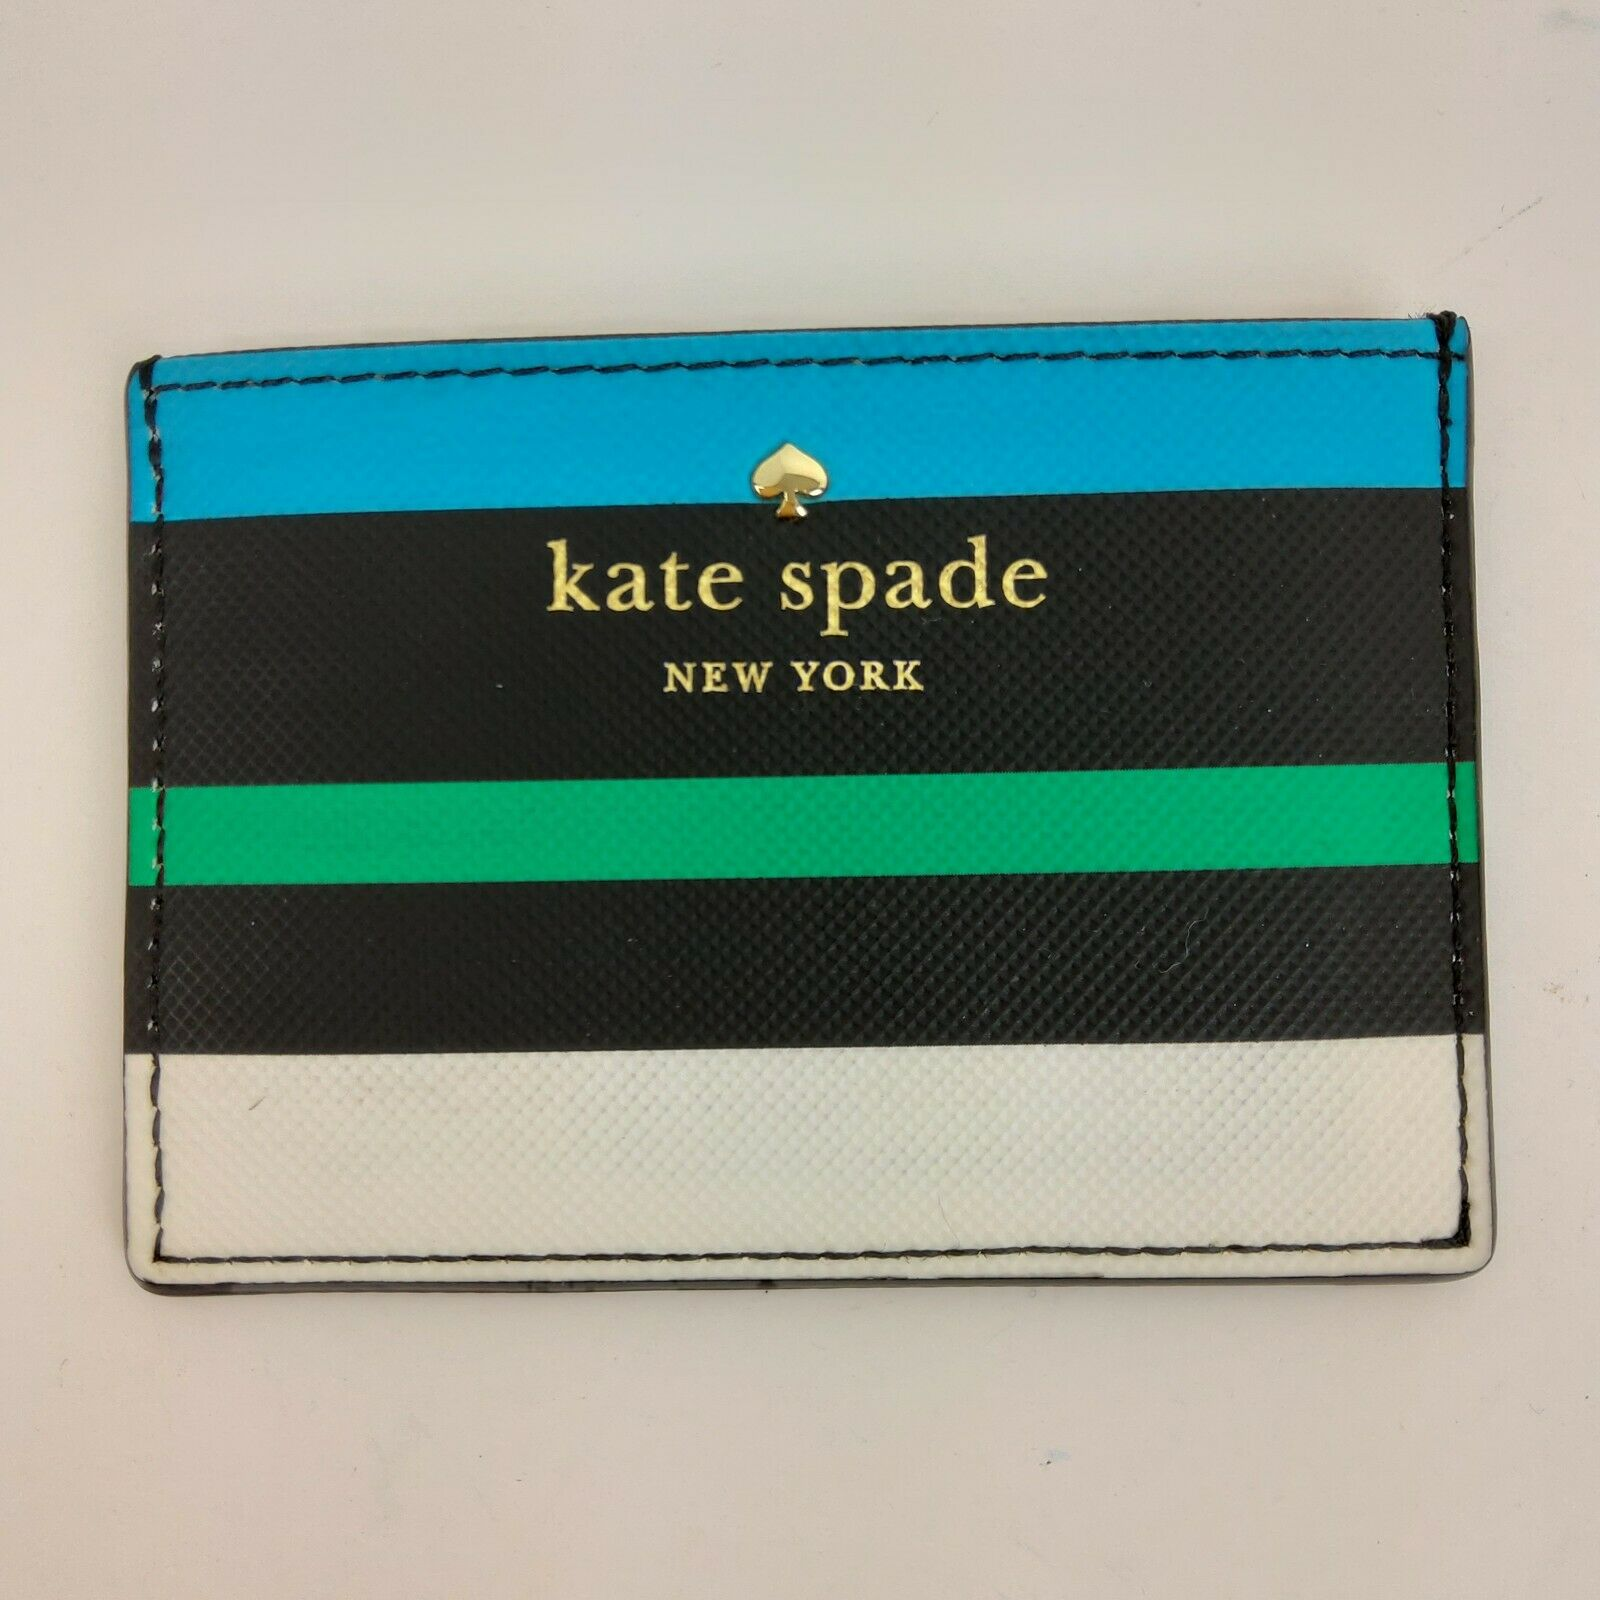 Kate Spade Card Holder Color Rainbow Stripes Navy Pink compact slim 3 slot ID